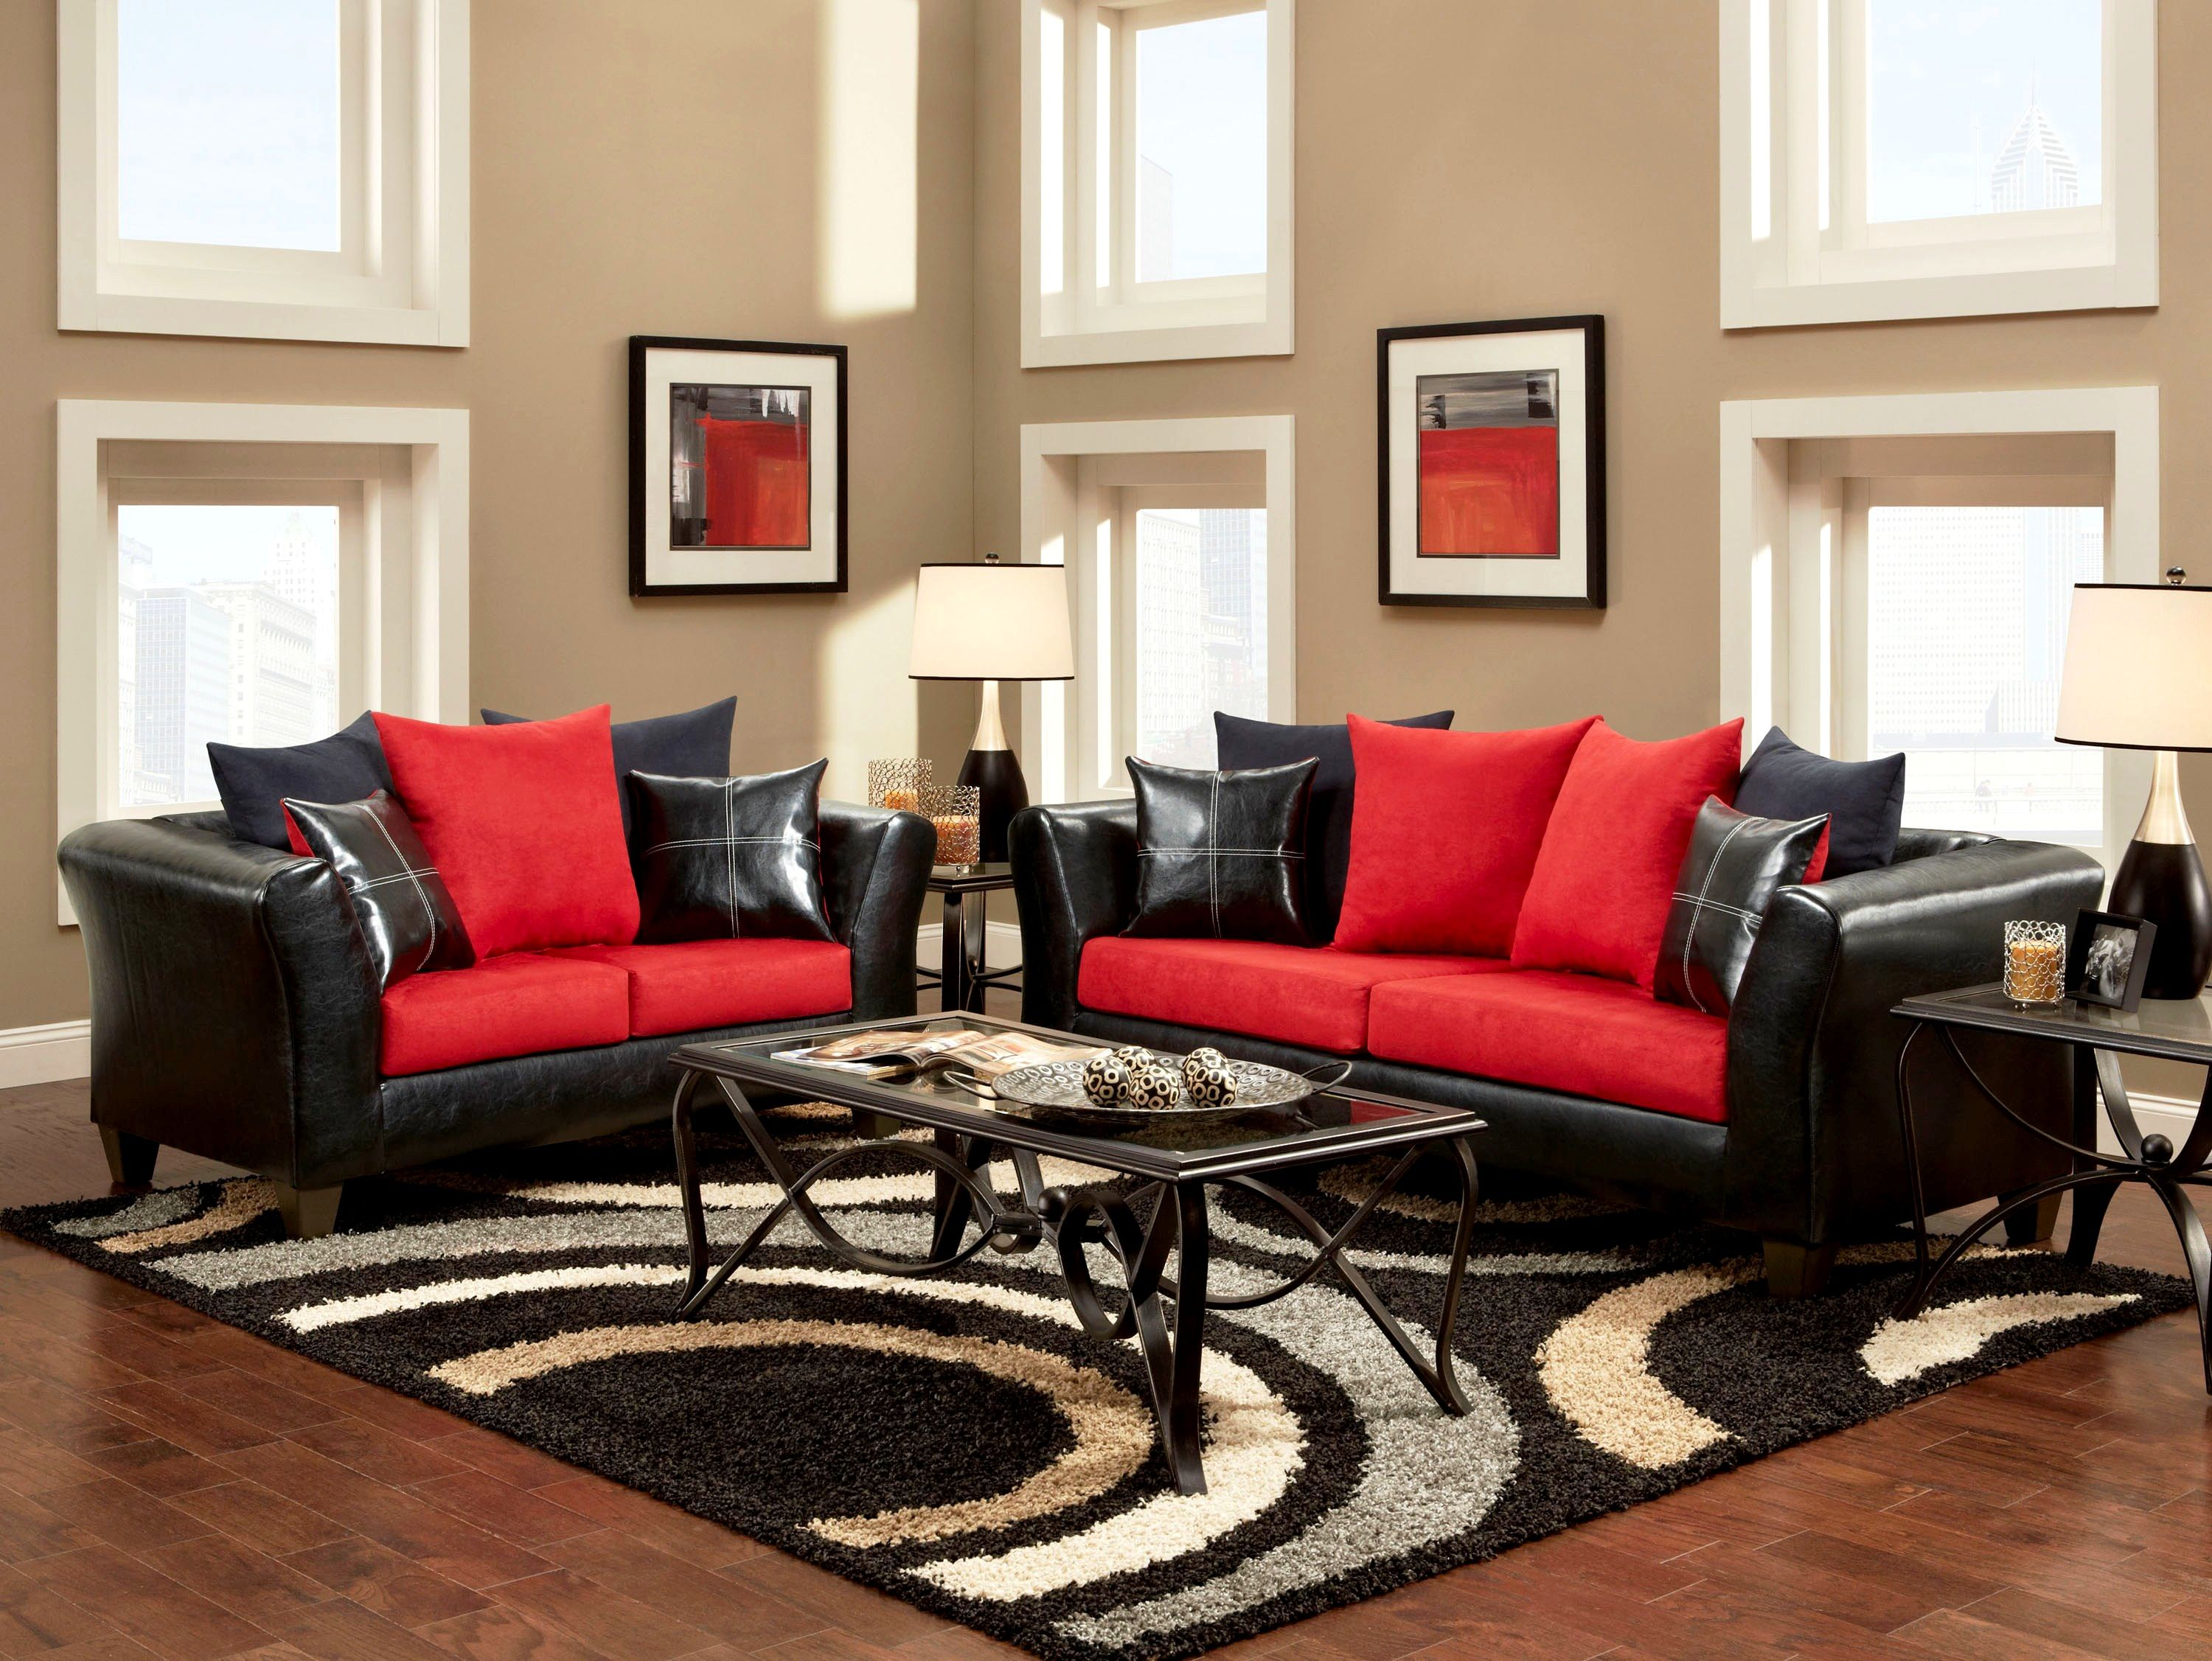 Phenomenal Living Room Comely Black And Red Living Room Pattern Rug Gmtry Best Dining Table And Chair Ideas Images Gmtryco